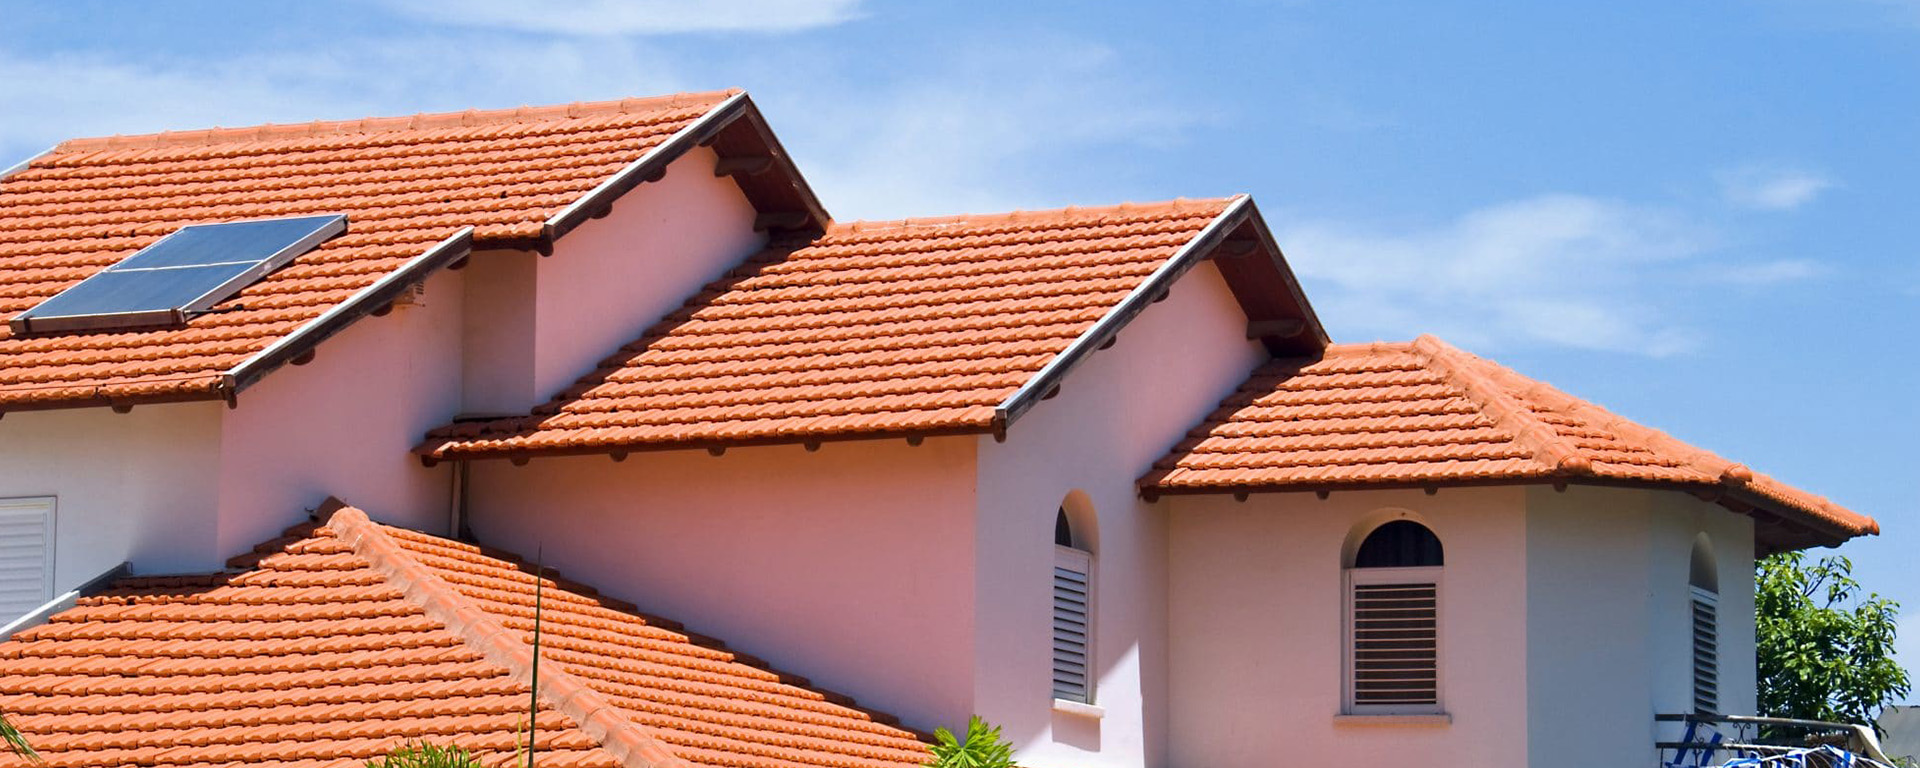 shingle roof in sarasota